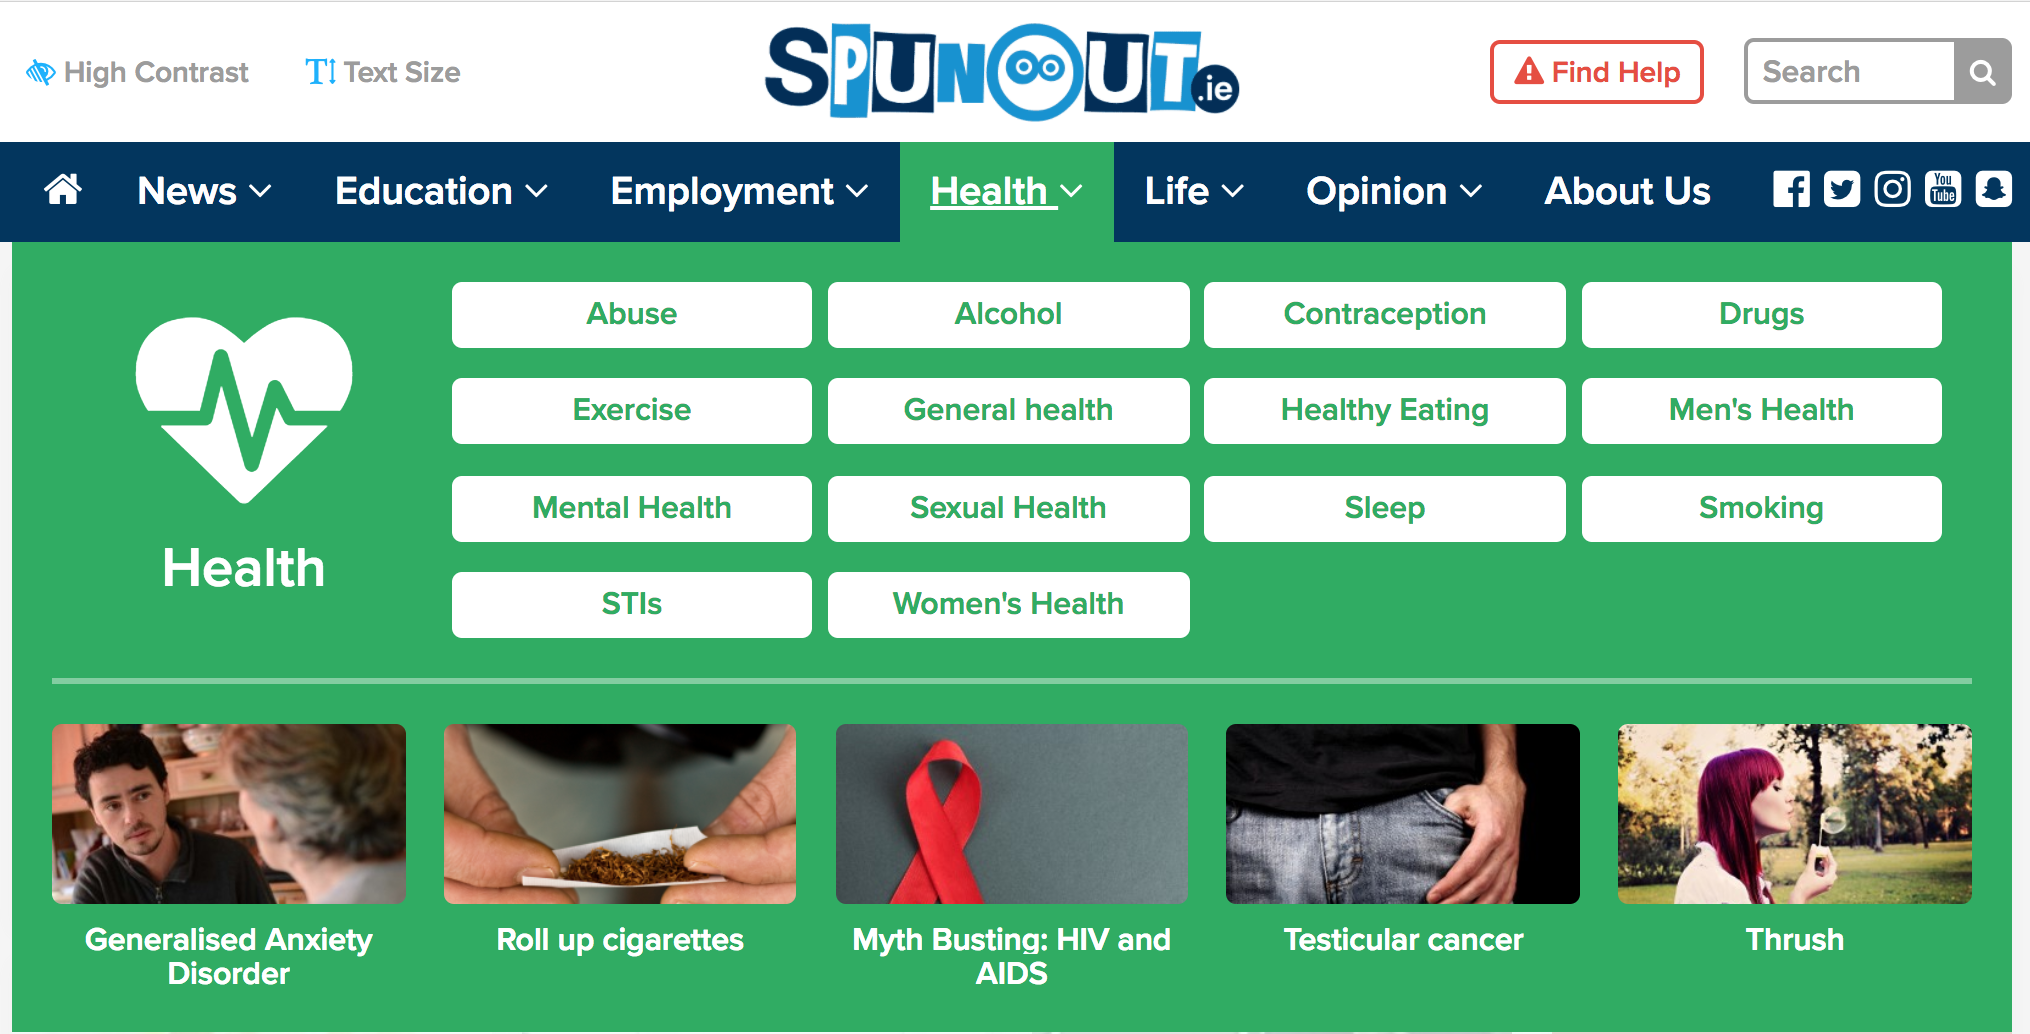 An image of Spunout.ie health tab